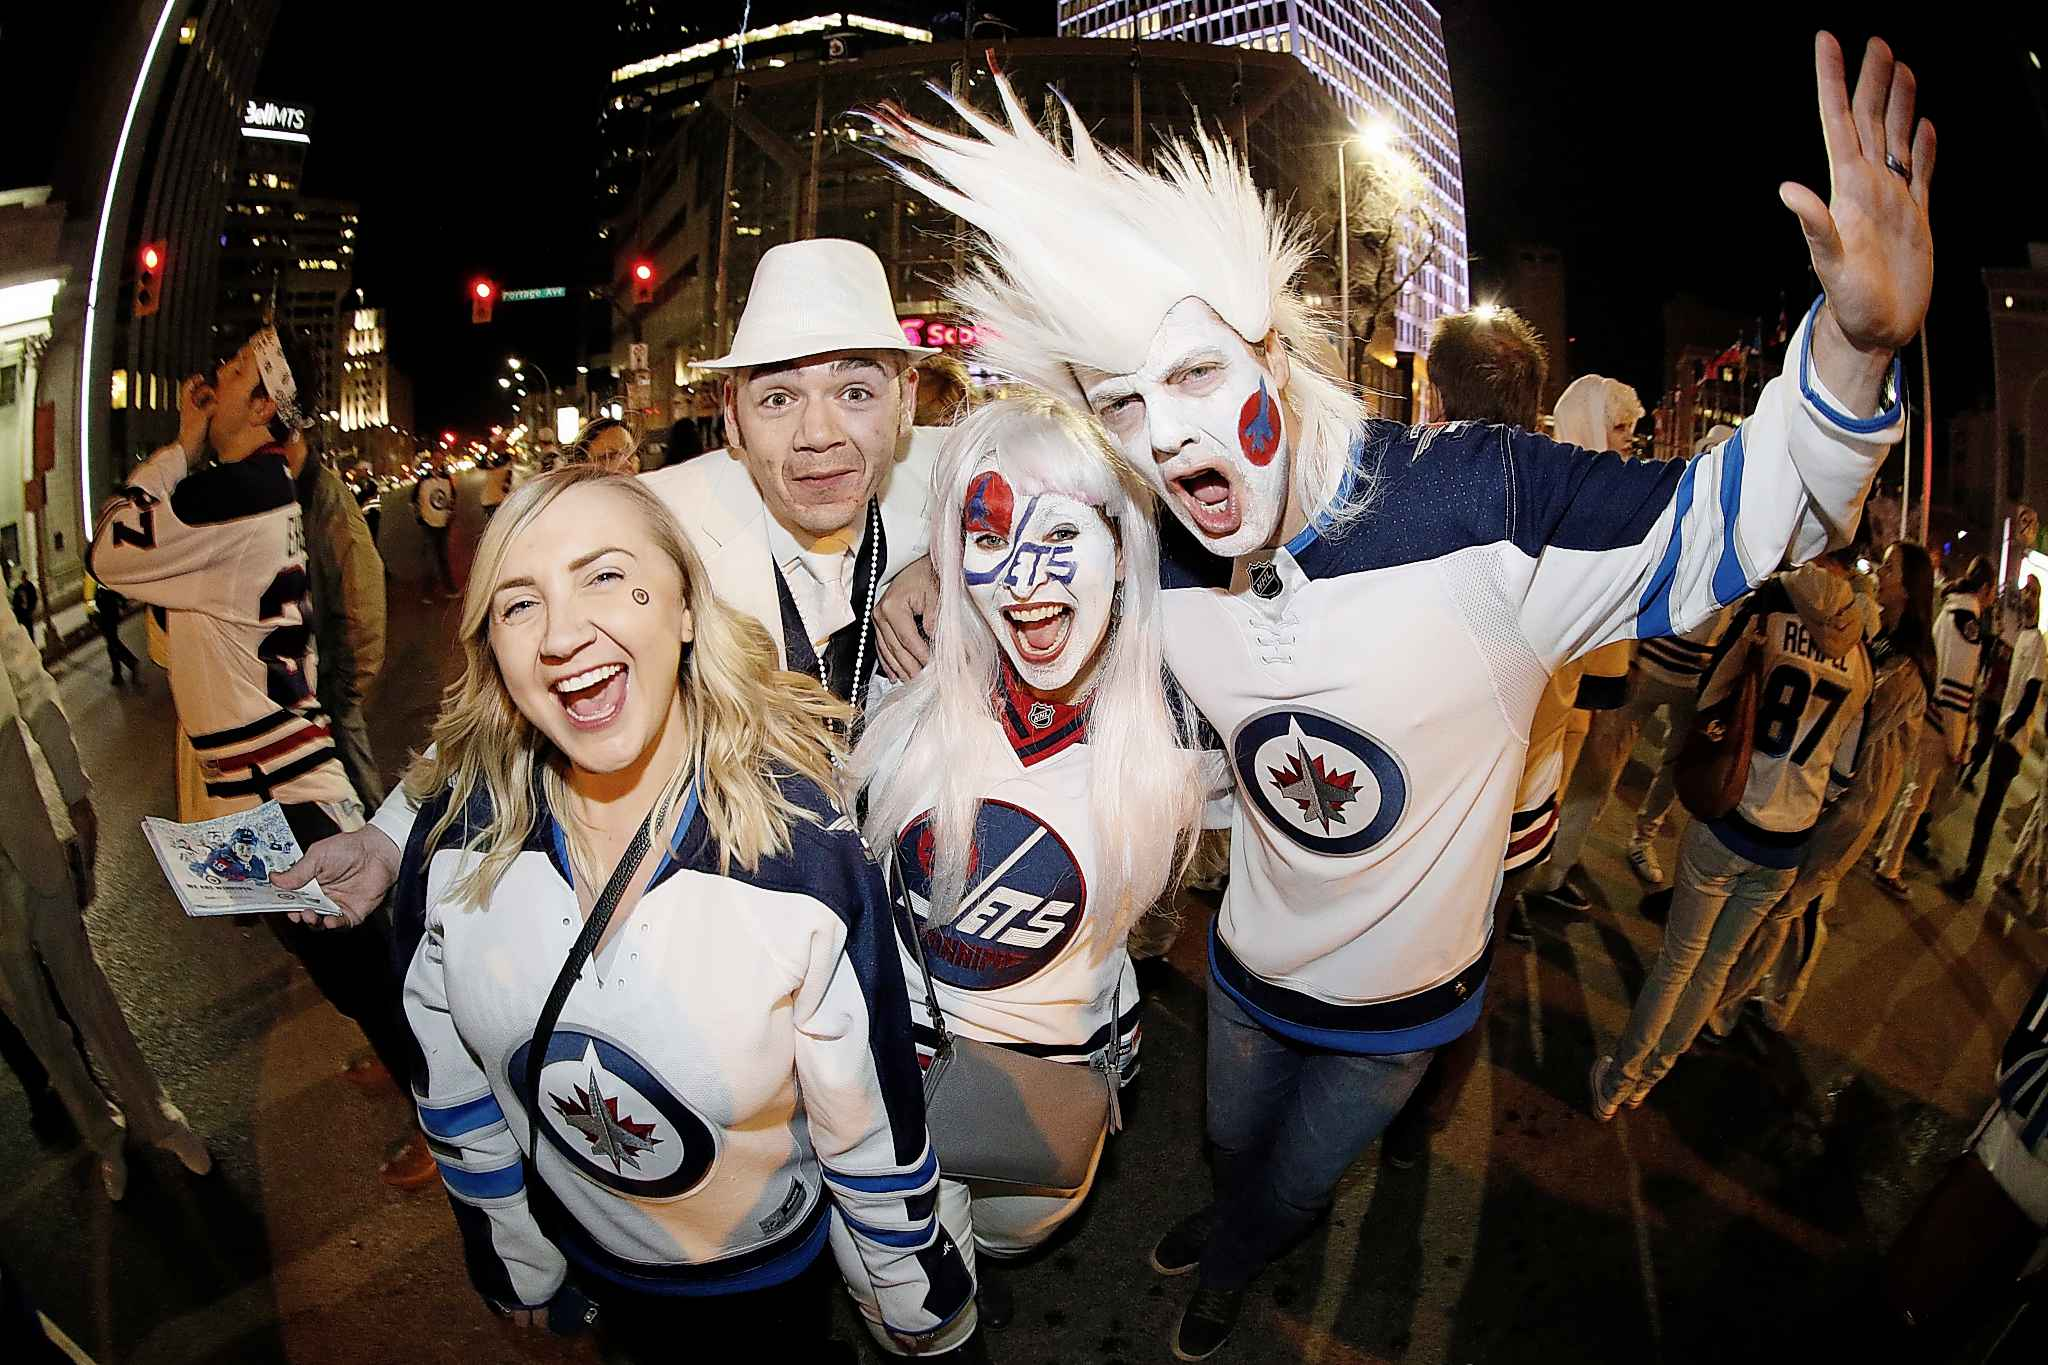 Winnipeg Jet fans celebrate at Portage and Main in downtown Winnipeg after the Winnipeg Jets defeated the Minnesota Wild in game five of their NHL playoff series to win the first round 4-1 in Winnipeg on last April.